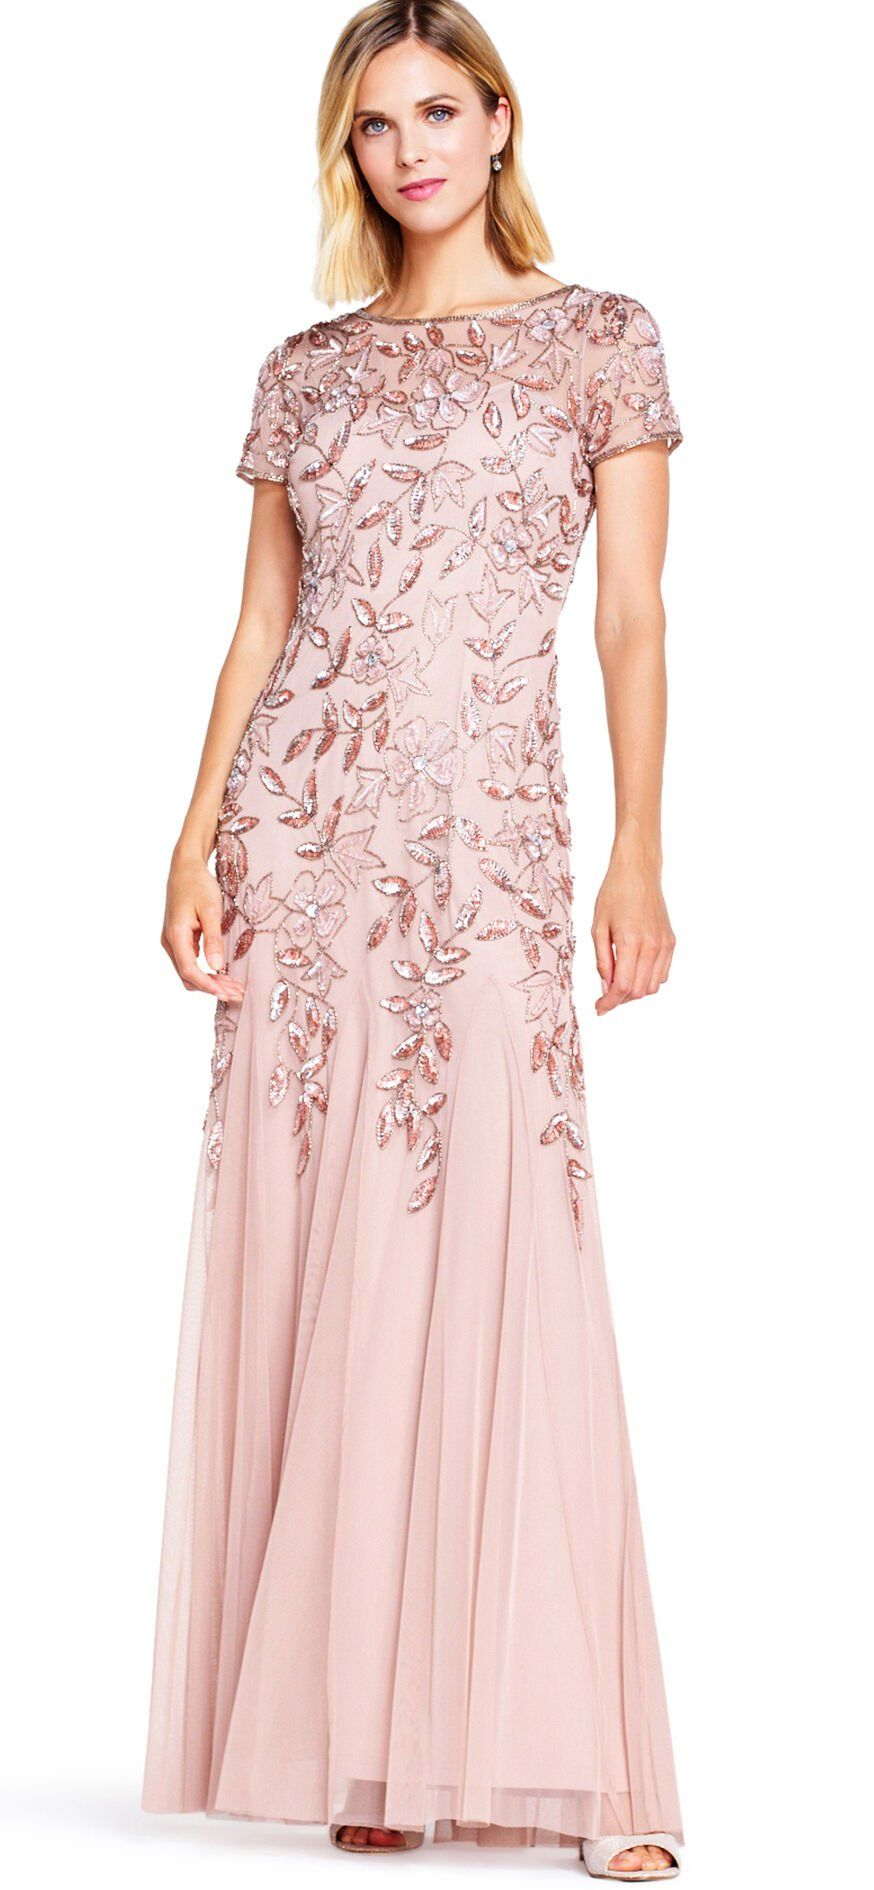 Floral Beaded Godet Gown with Sheer Short Sleeves in 2020